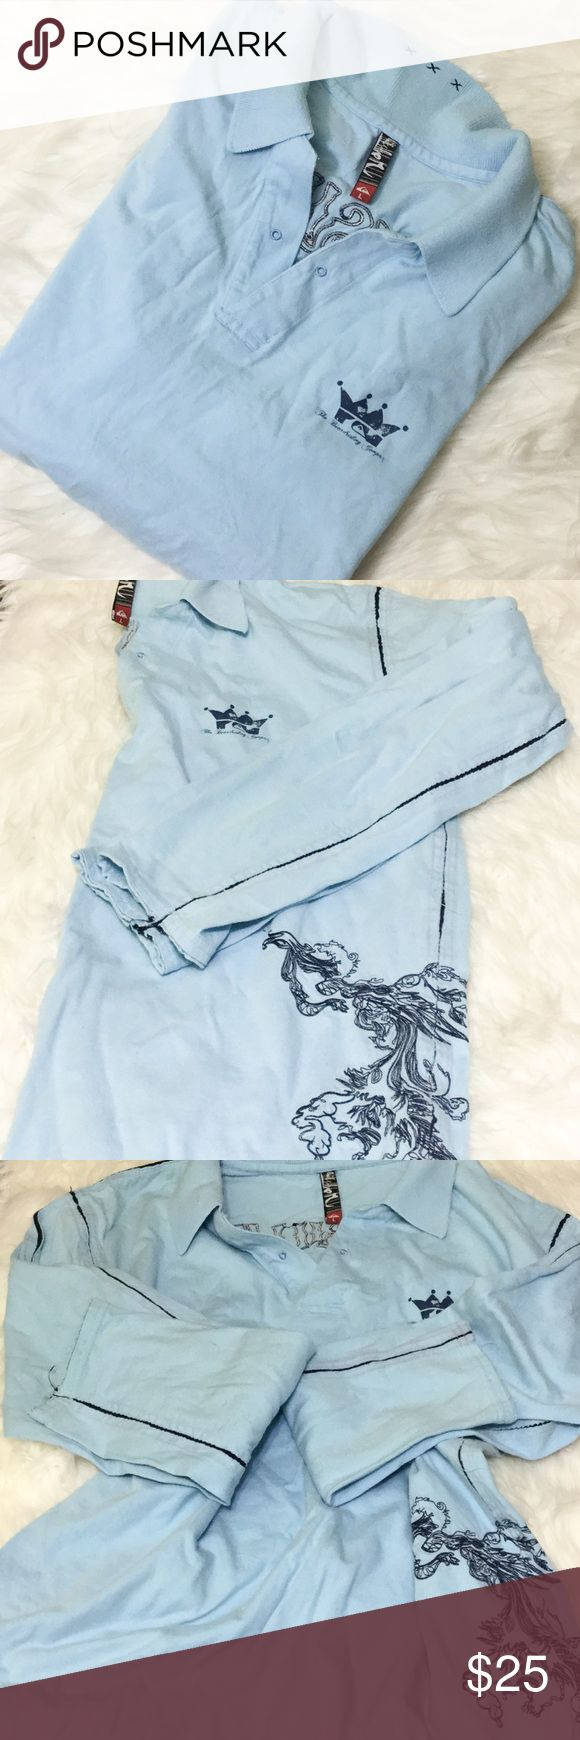 "LG QUIKSILVER LONG SLEEVE POLO Brand is ""Quiksilver"". Size is men's size large. Three button collar long sleeve polo shirt. Casual style. Light blue with dark royal blue accents. Dragon embroidered design.  Posh rules only No paypal No lowballing  Price firm unless bundled.  I'm a suggested user and party host, posh ambassador, posh mentor, and I'm five star rated so buy with confidence!  H A P P Y  P O S H I N G  ⭐️✨⭐️✨⭐️✨🙏✨⭐️✨⭐️✨⭐️ Quiksilver Shirts Casual Button Down Shirts"